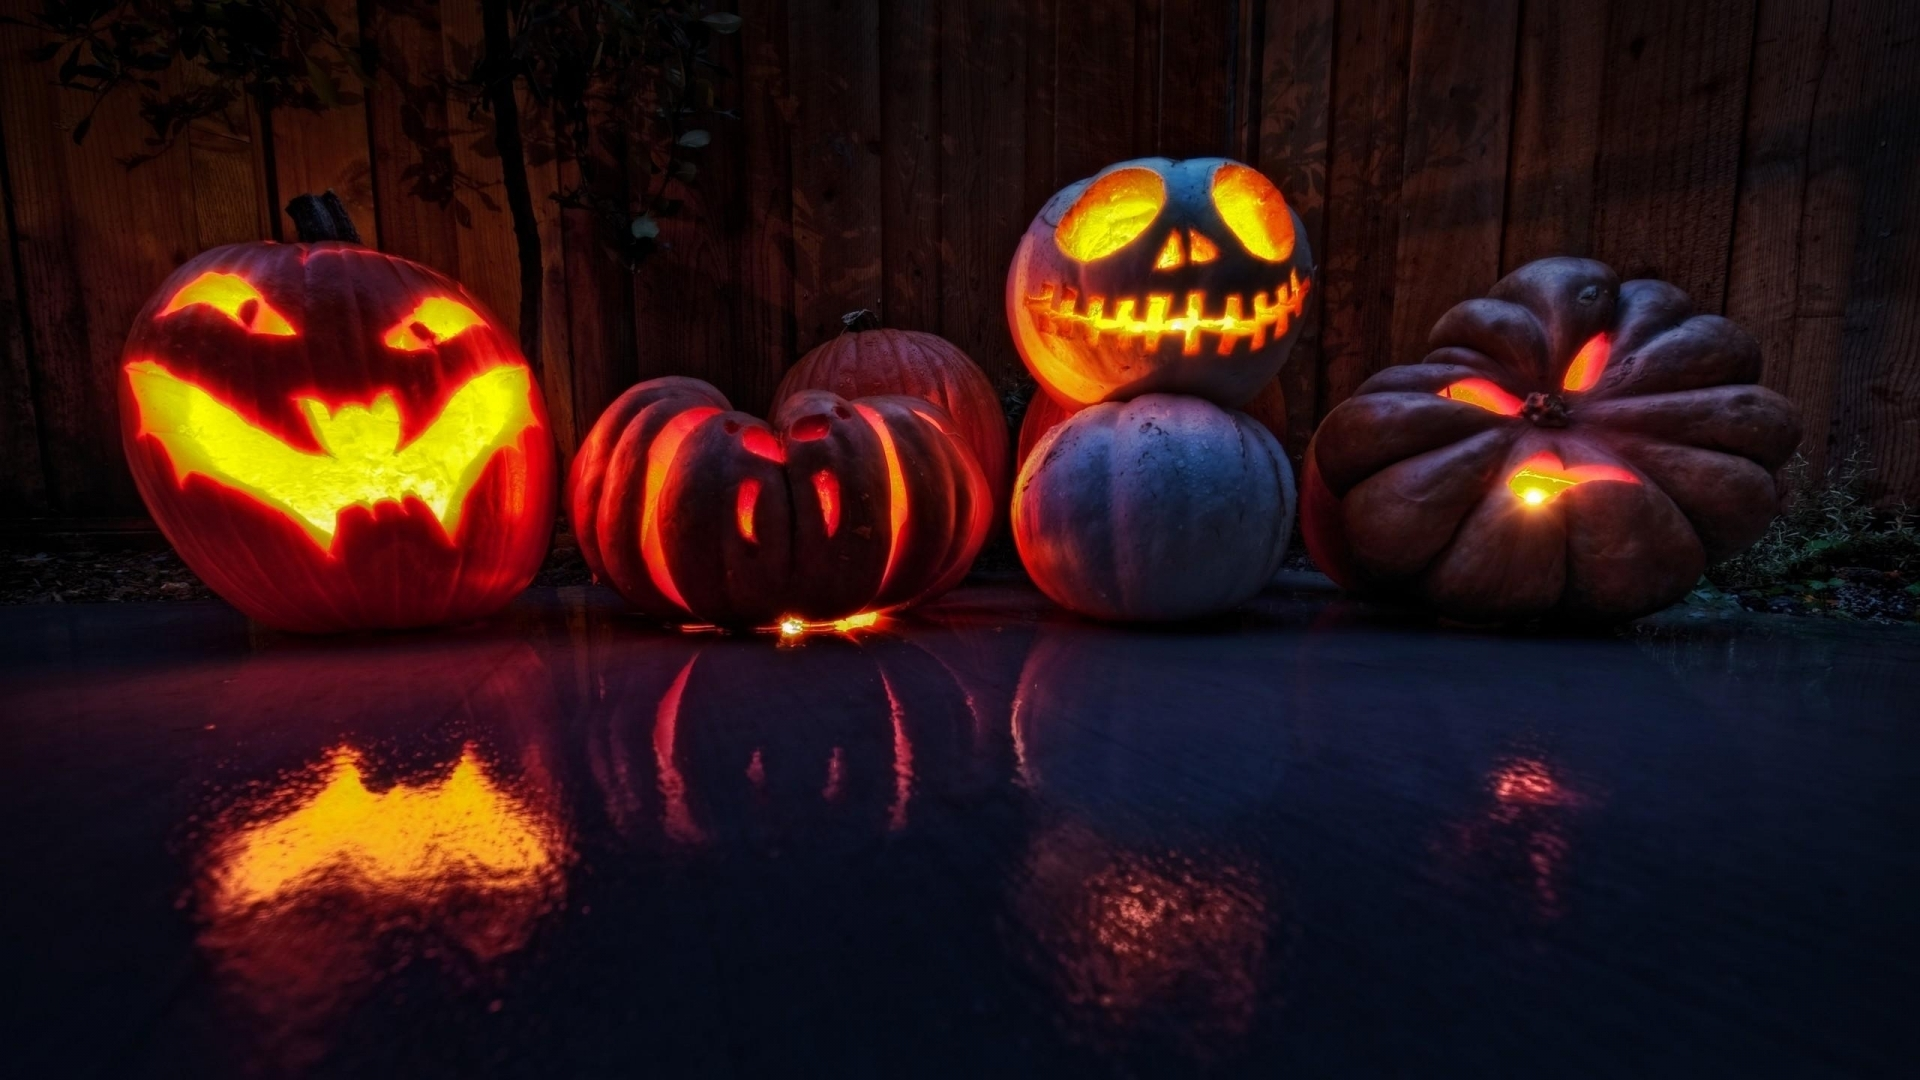 halloween hd wallpapers | page 2 of 3 | pixelstalk